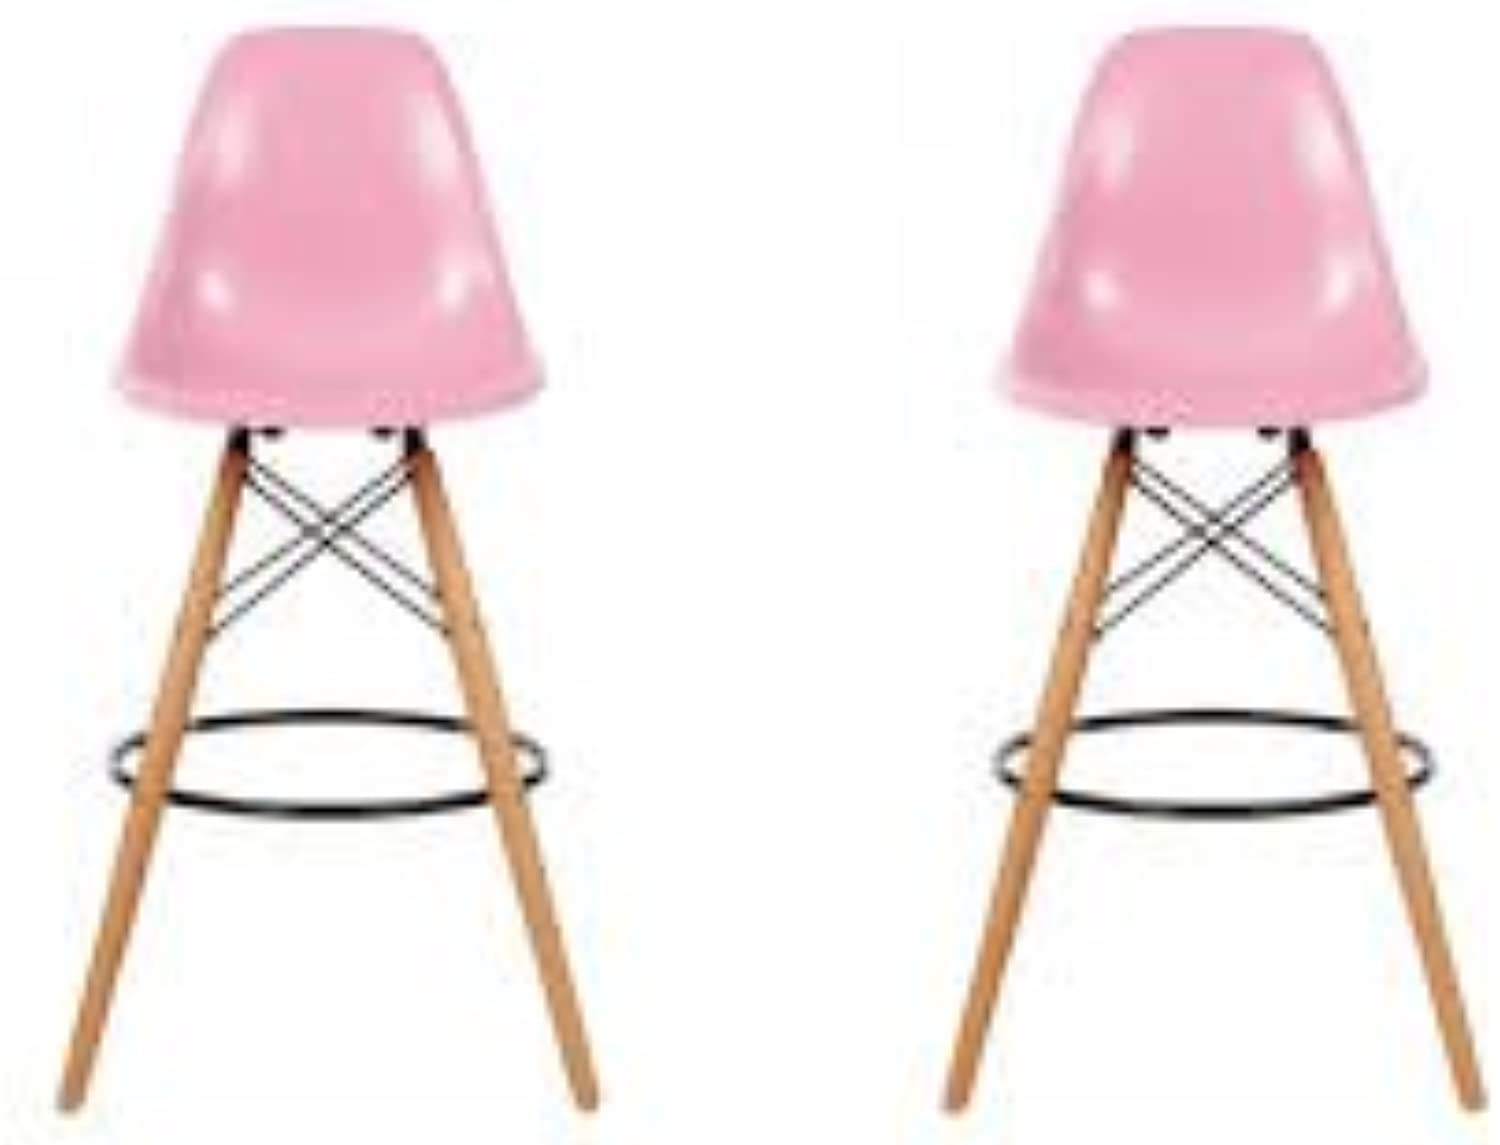 DS Inspired Eiffel Style Breakfast Bar stool with Wooden Legs (Pink, 1)